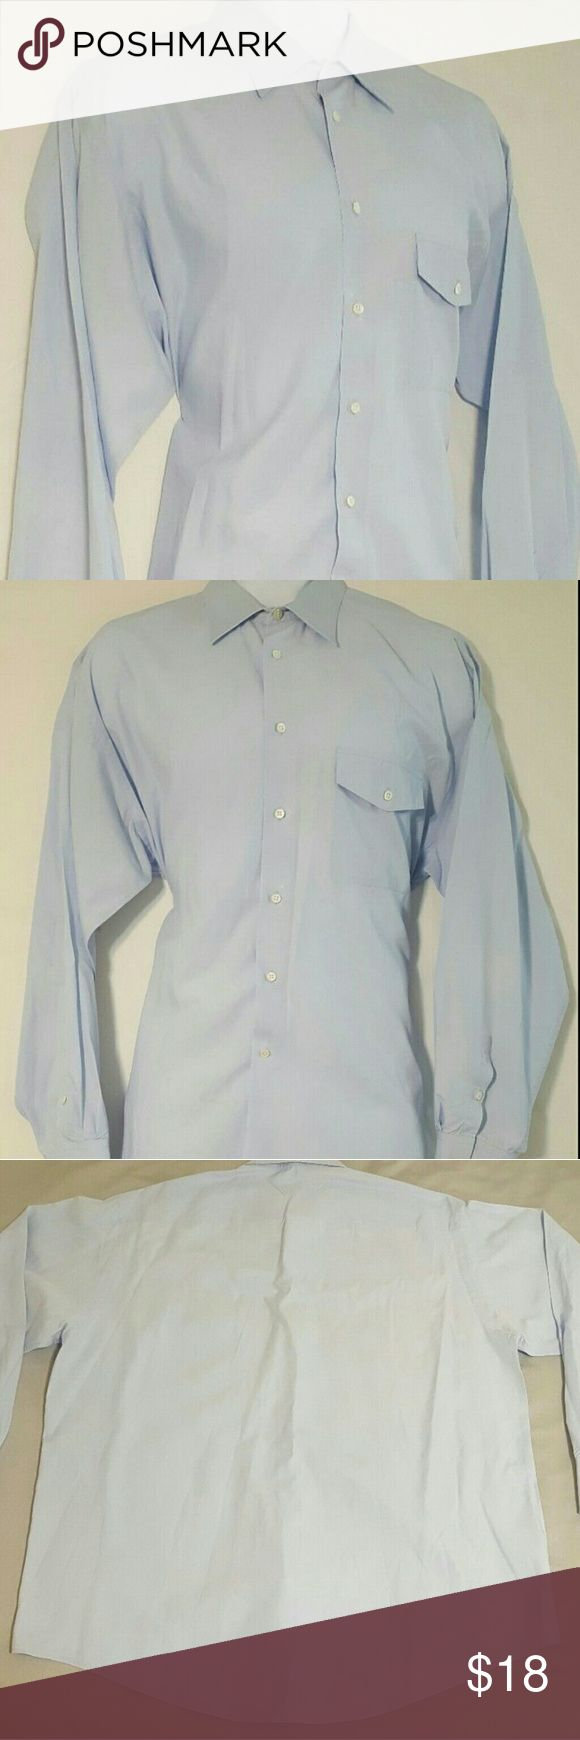 Giorgio Armani Le Collezioni 17.5 Dress Shirt Giorgio Armani   Le Collezioni  Button-down  Dress Shirt   Pre-owned - Used  Medium Wear  Slight Discolorations   Blue  Men's Size 17.5 - 34/35  Cotton Blend  Unknown Country   Fast Shipping and Handling   Love The Item but,   Not The Price?   Make An Offer! Giorgio Armani Shirts Dress Shirts